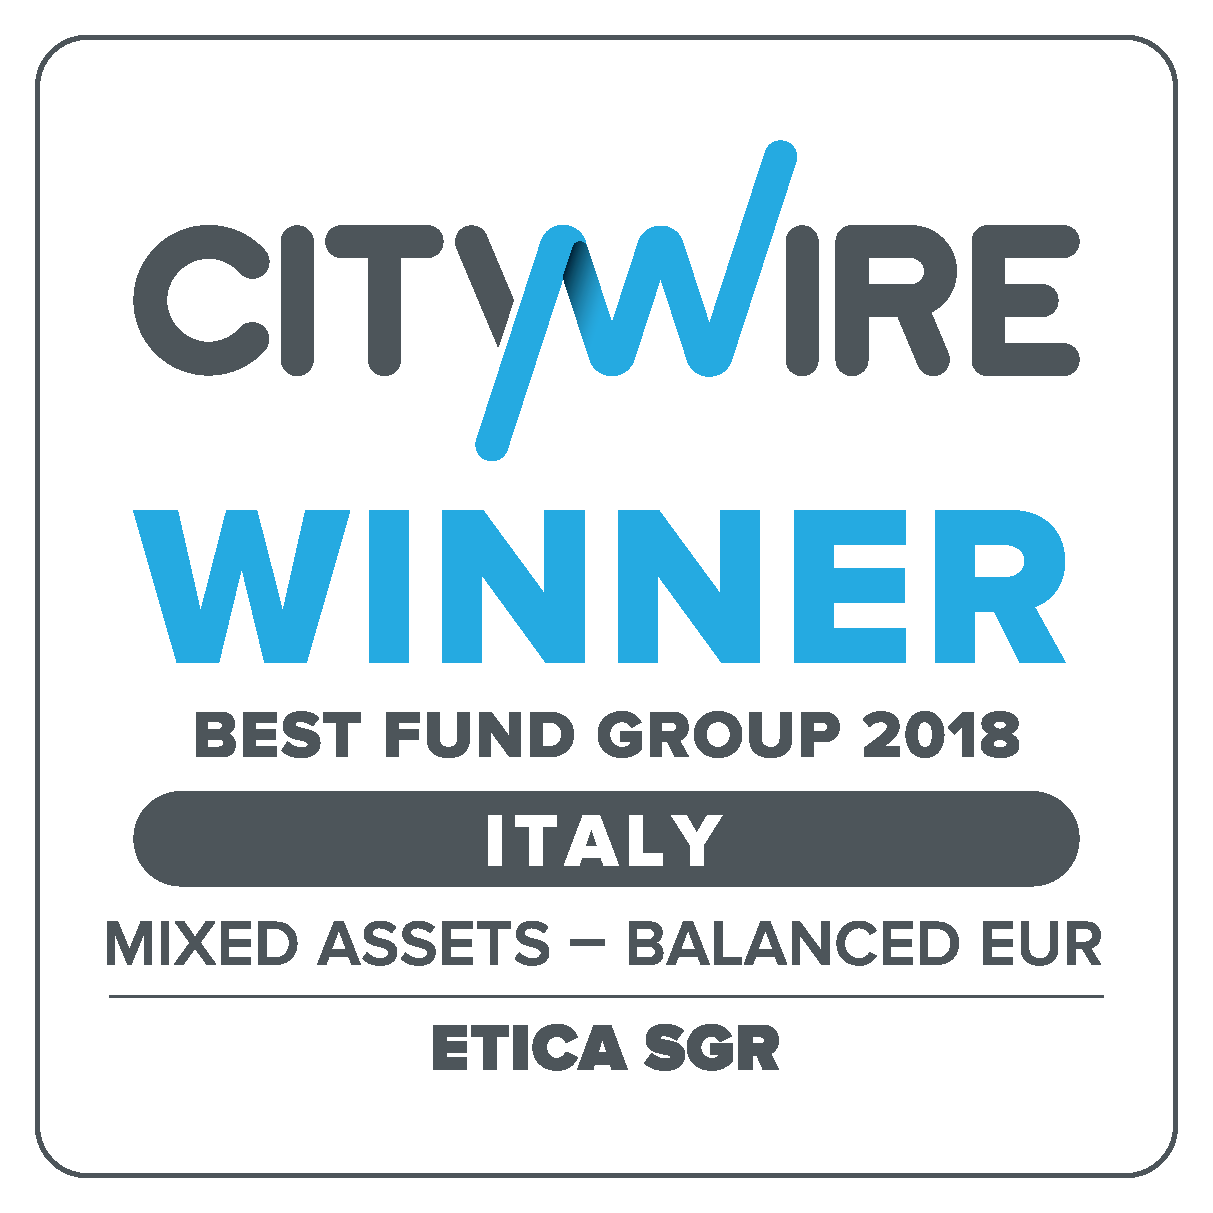 Citywire Italy Awards: Etica Sgr wins the Mixed Assets